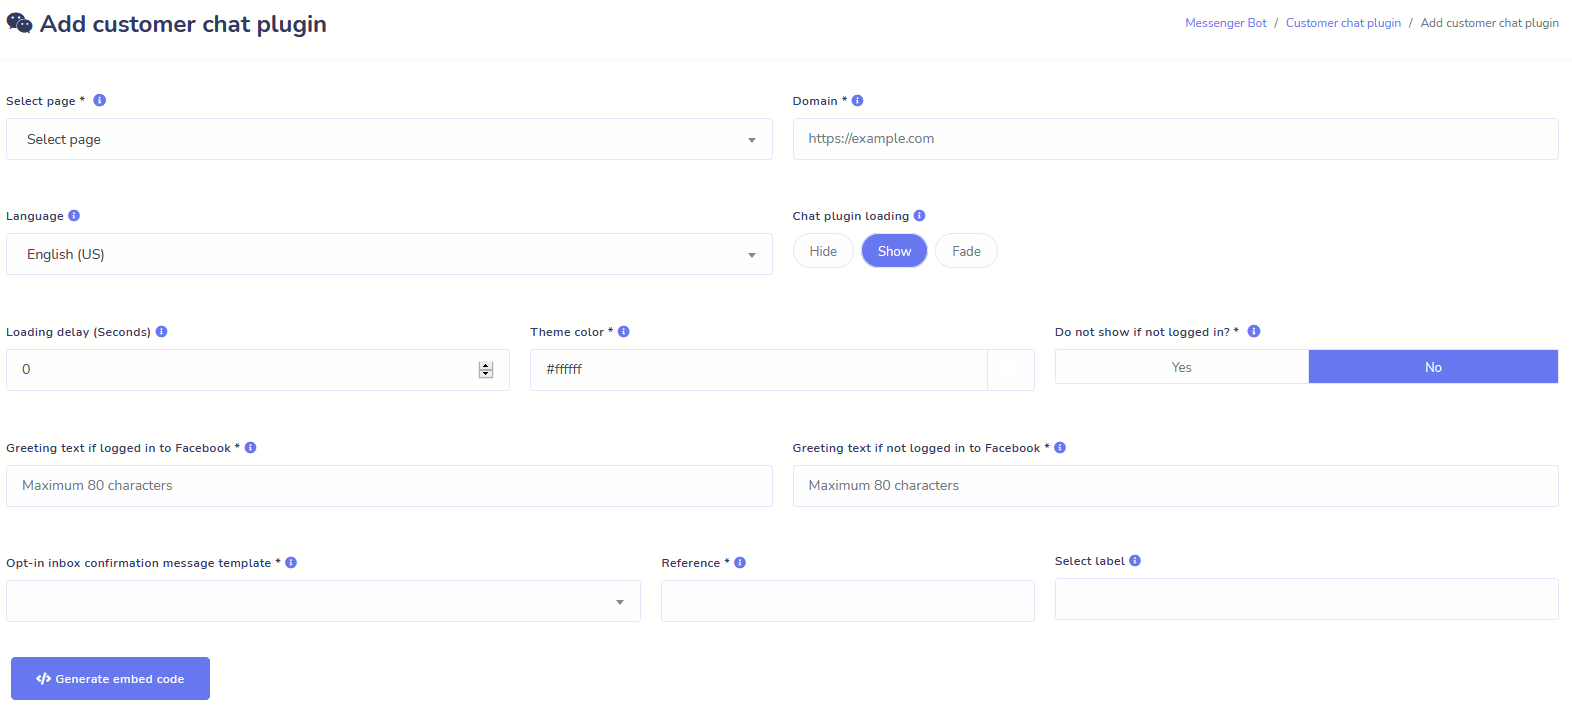 Messenger Bot Customer Chat Plugin